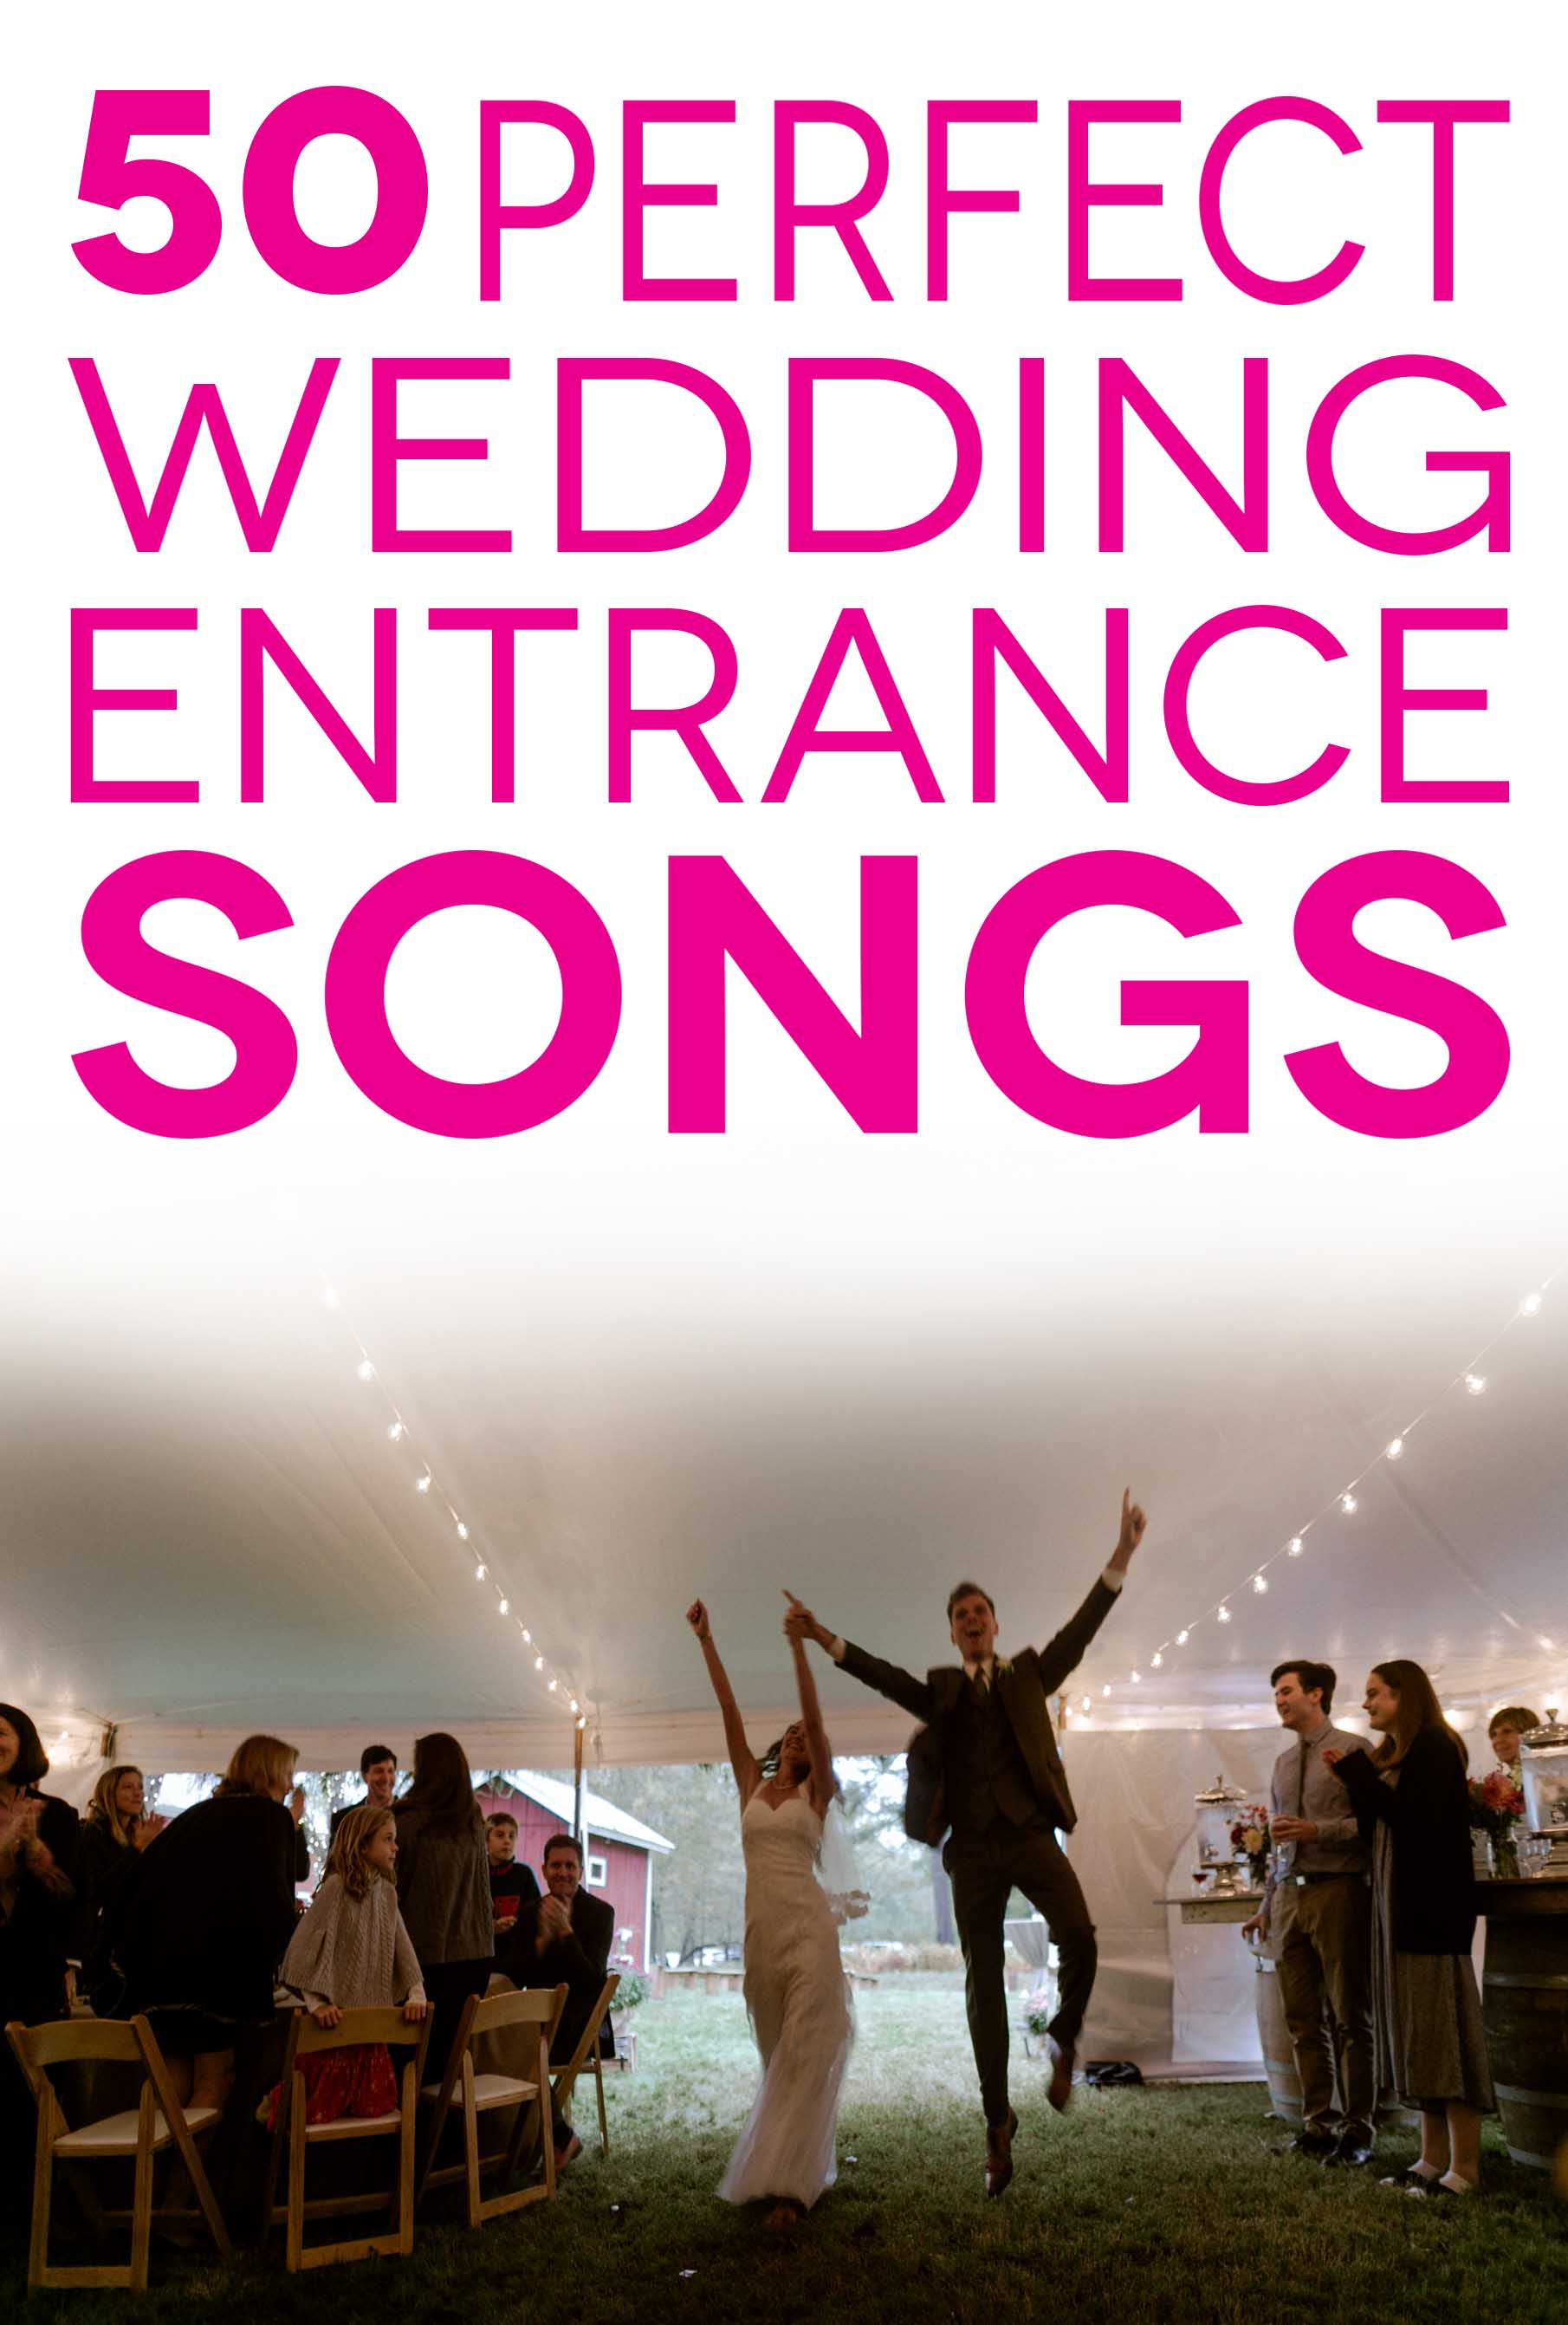 """""""50 perfect wedding entrance songs"""" in pink lettering overlaying a photo of a couple joyfully entering their wedding reception"""